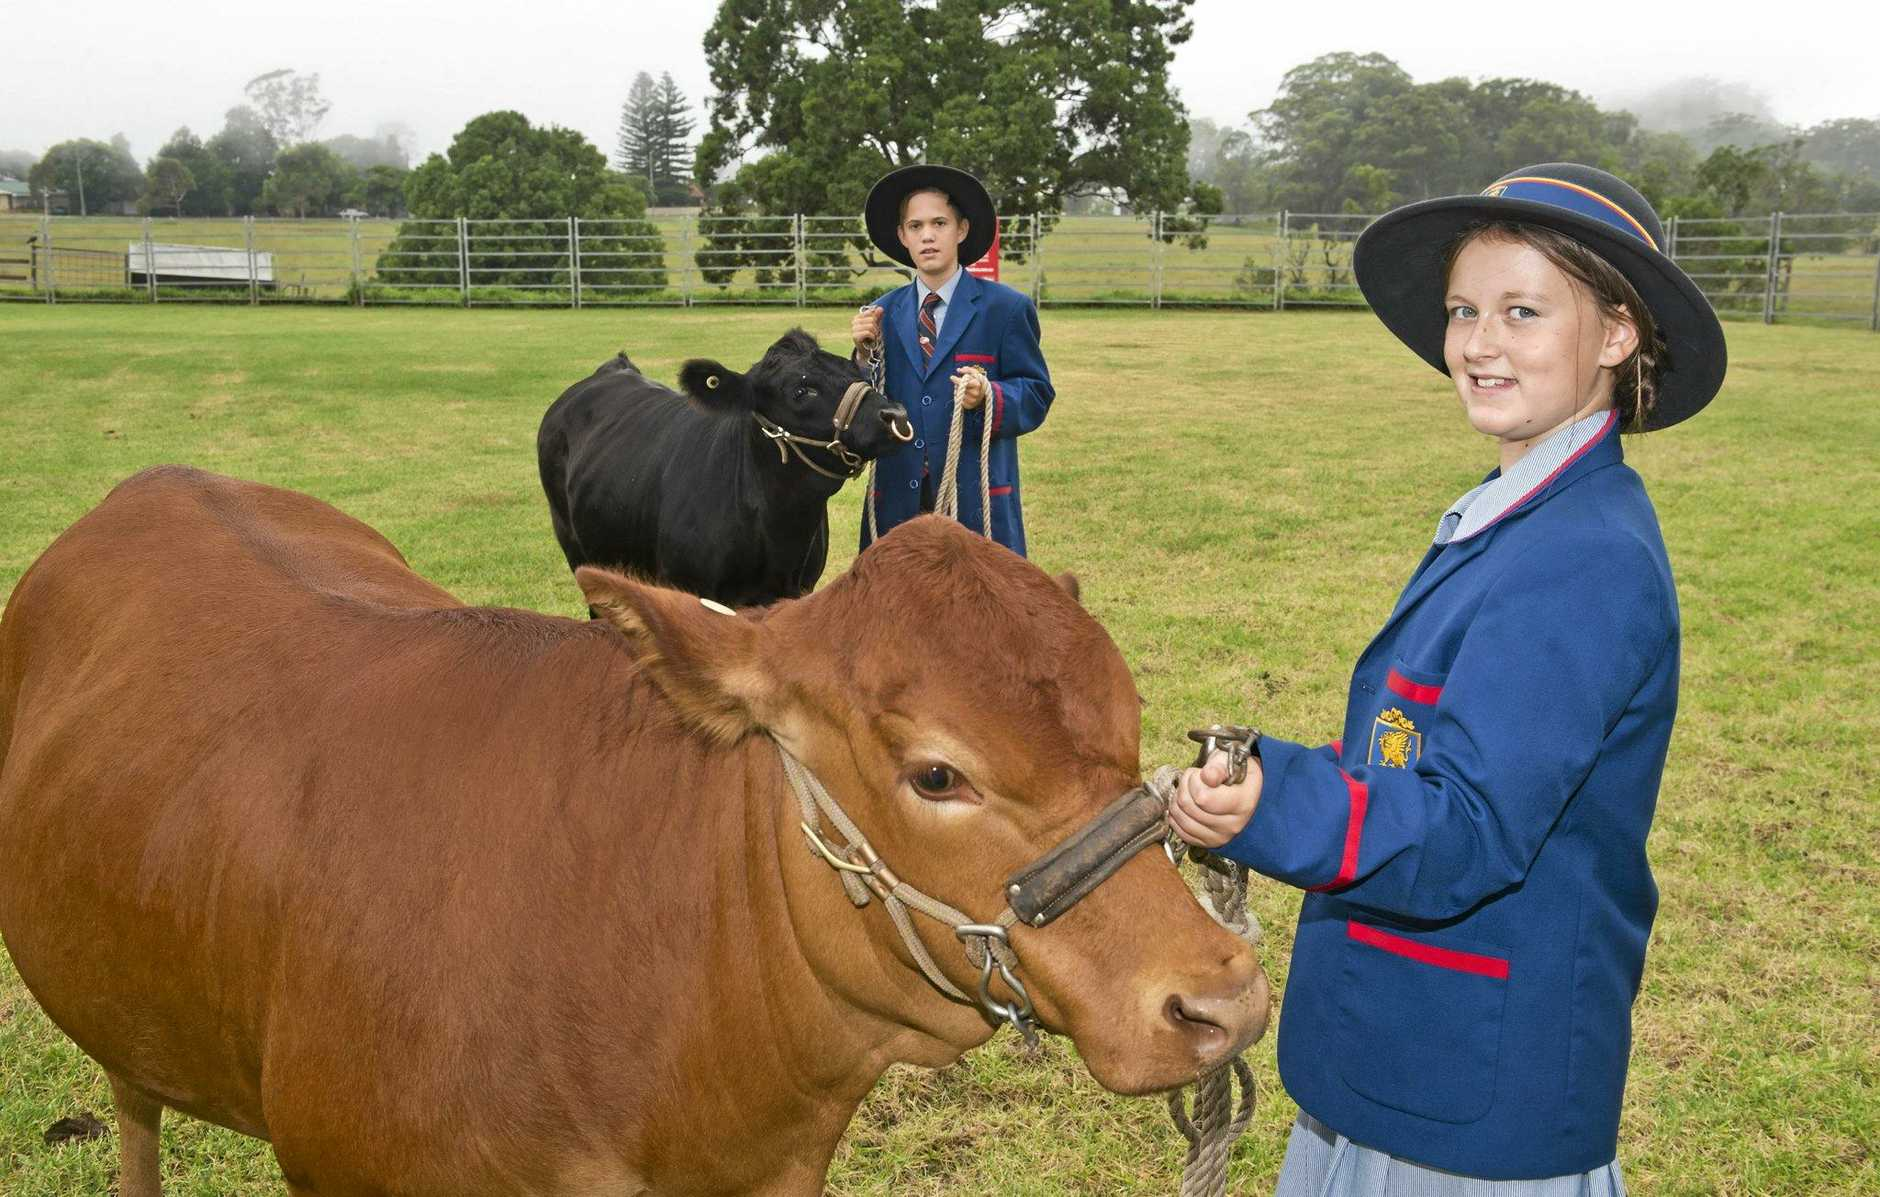 CLASSING CATTLE: Will Doyle (left) and Lily Kemph look forward to the cattle showing introduction day at the Downlands College Rural Centre.